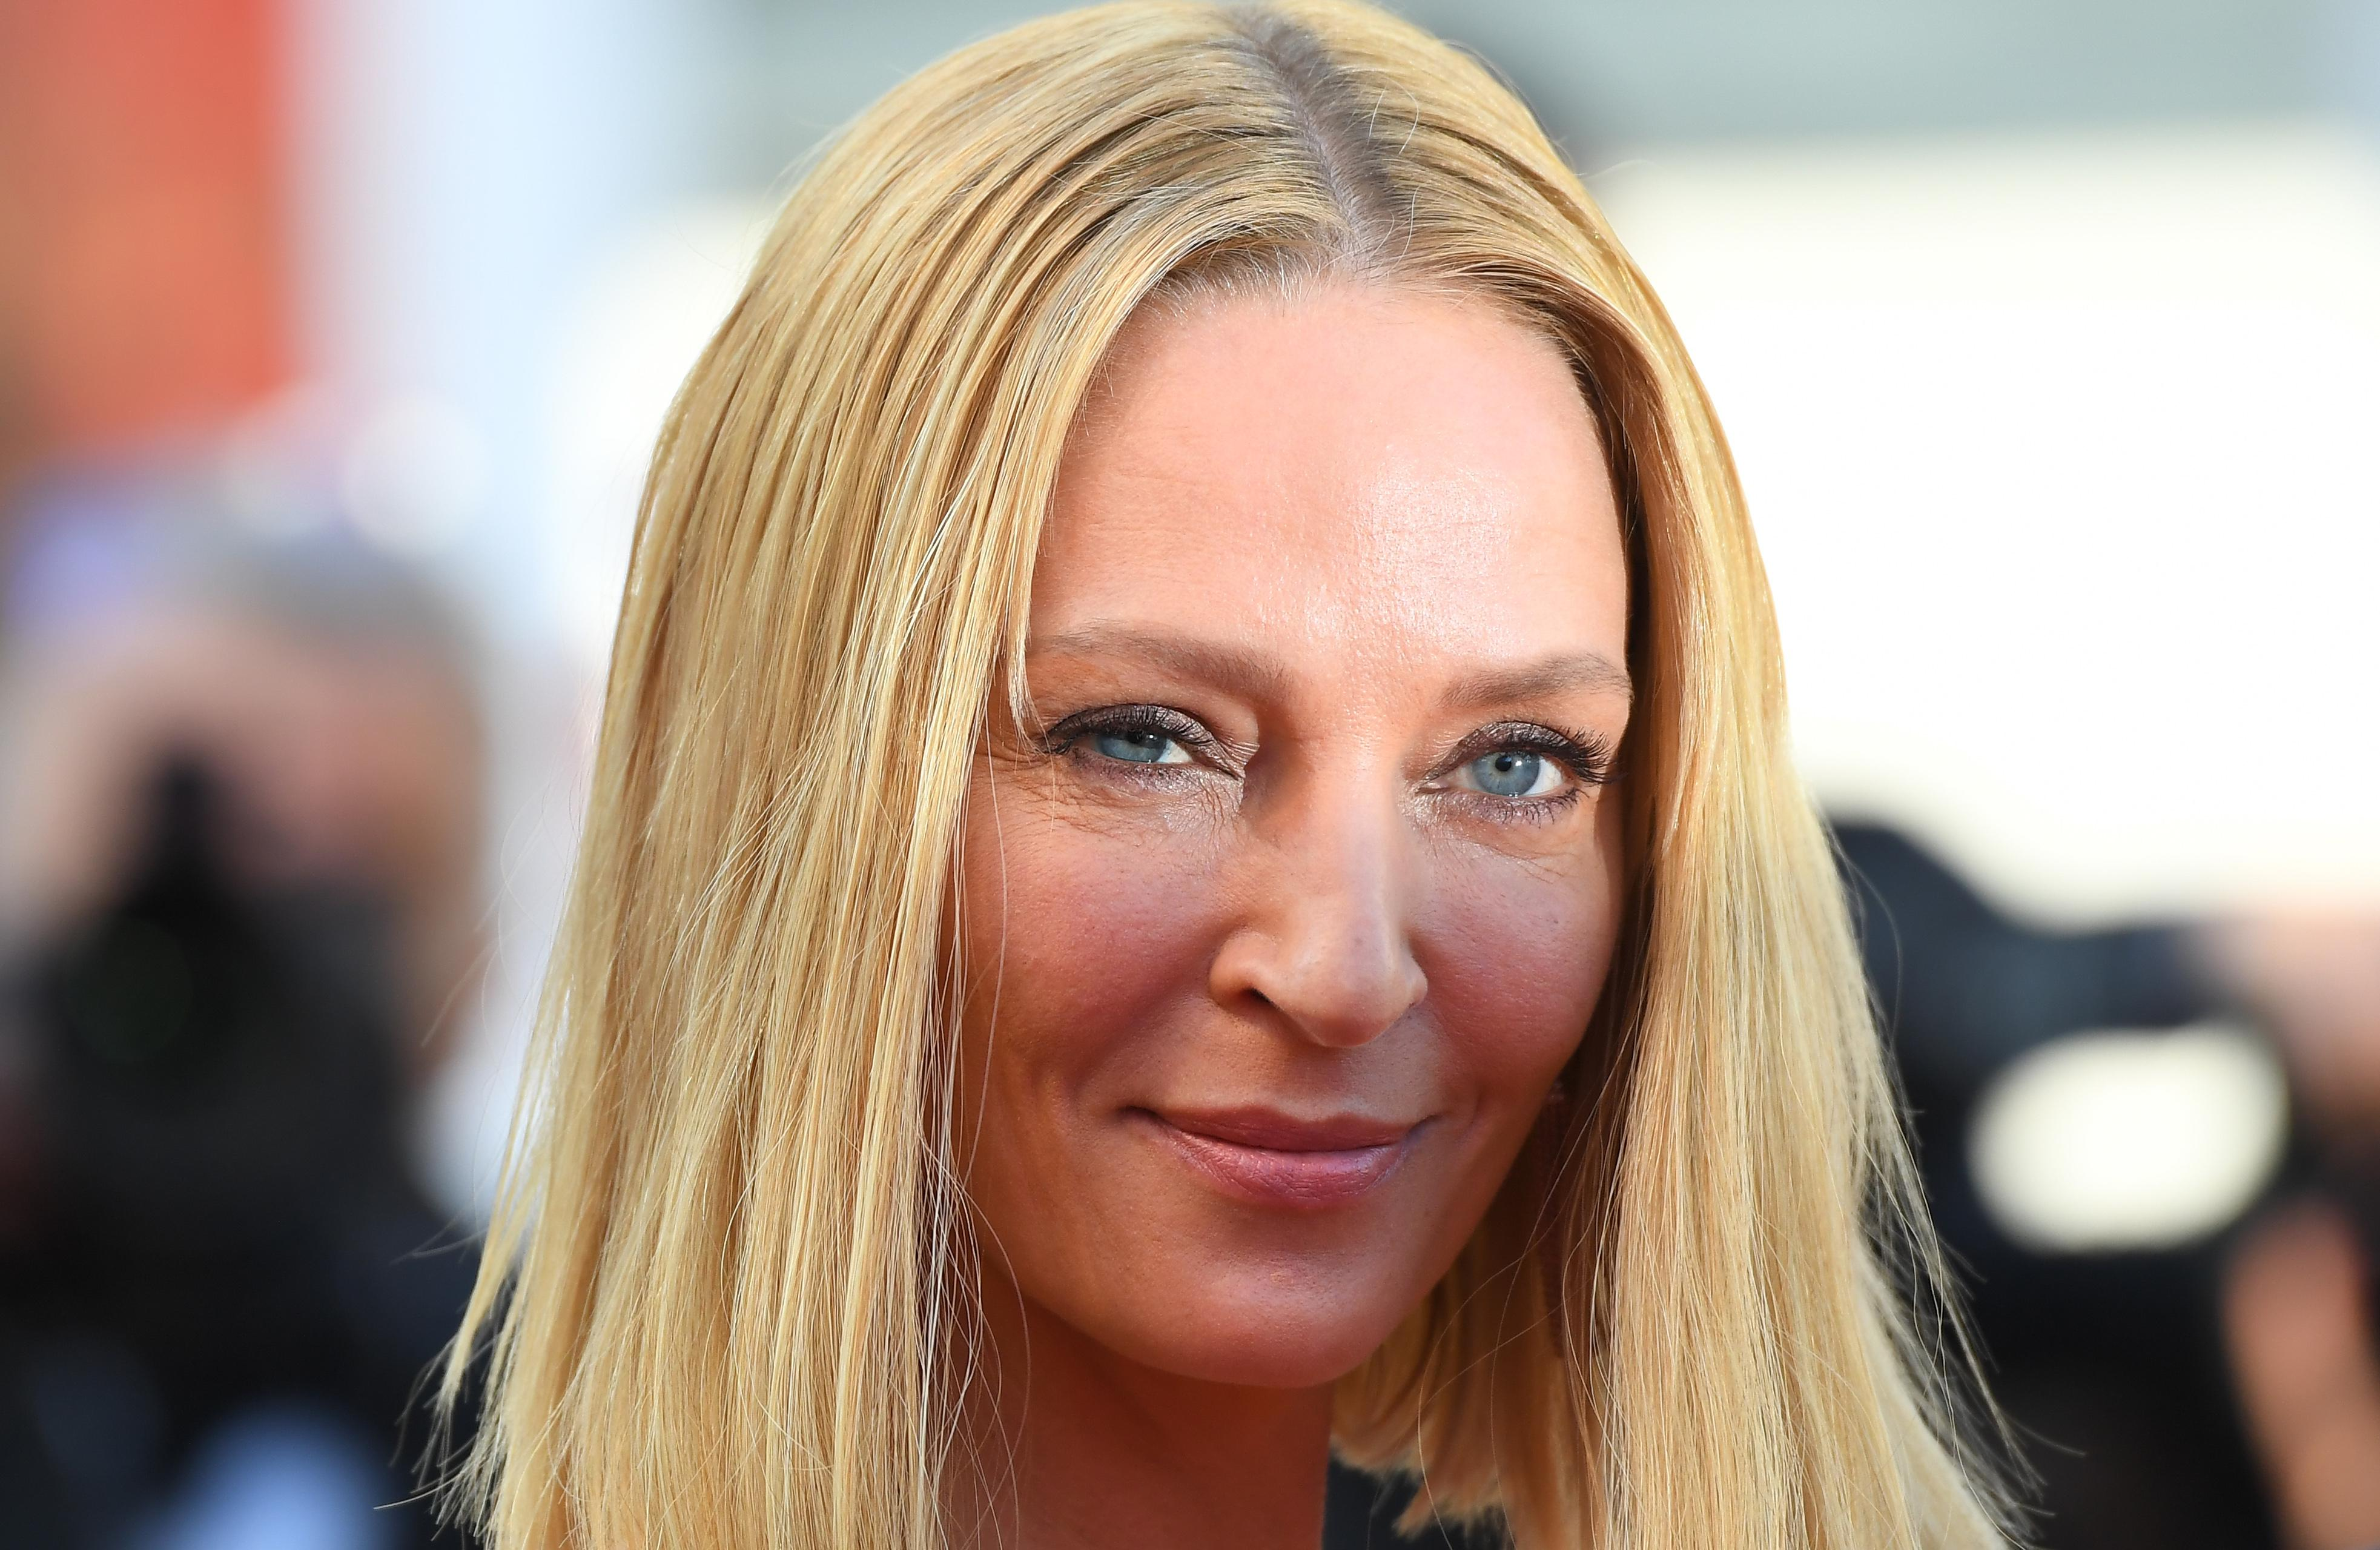 US actress and President of the Un Certain Regard jury Uma Thurman arrives on May 28, 2017 for the closing ceremony of the 70th edition of the Cannes Film Festival in Cannes, southern France.  / AFP PHOTO / Anne-Christine POUJOULAT        (Photo credit should read ANNE-CHRISTINE POUJOULAT/AFP/Getty Images)